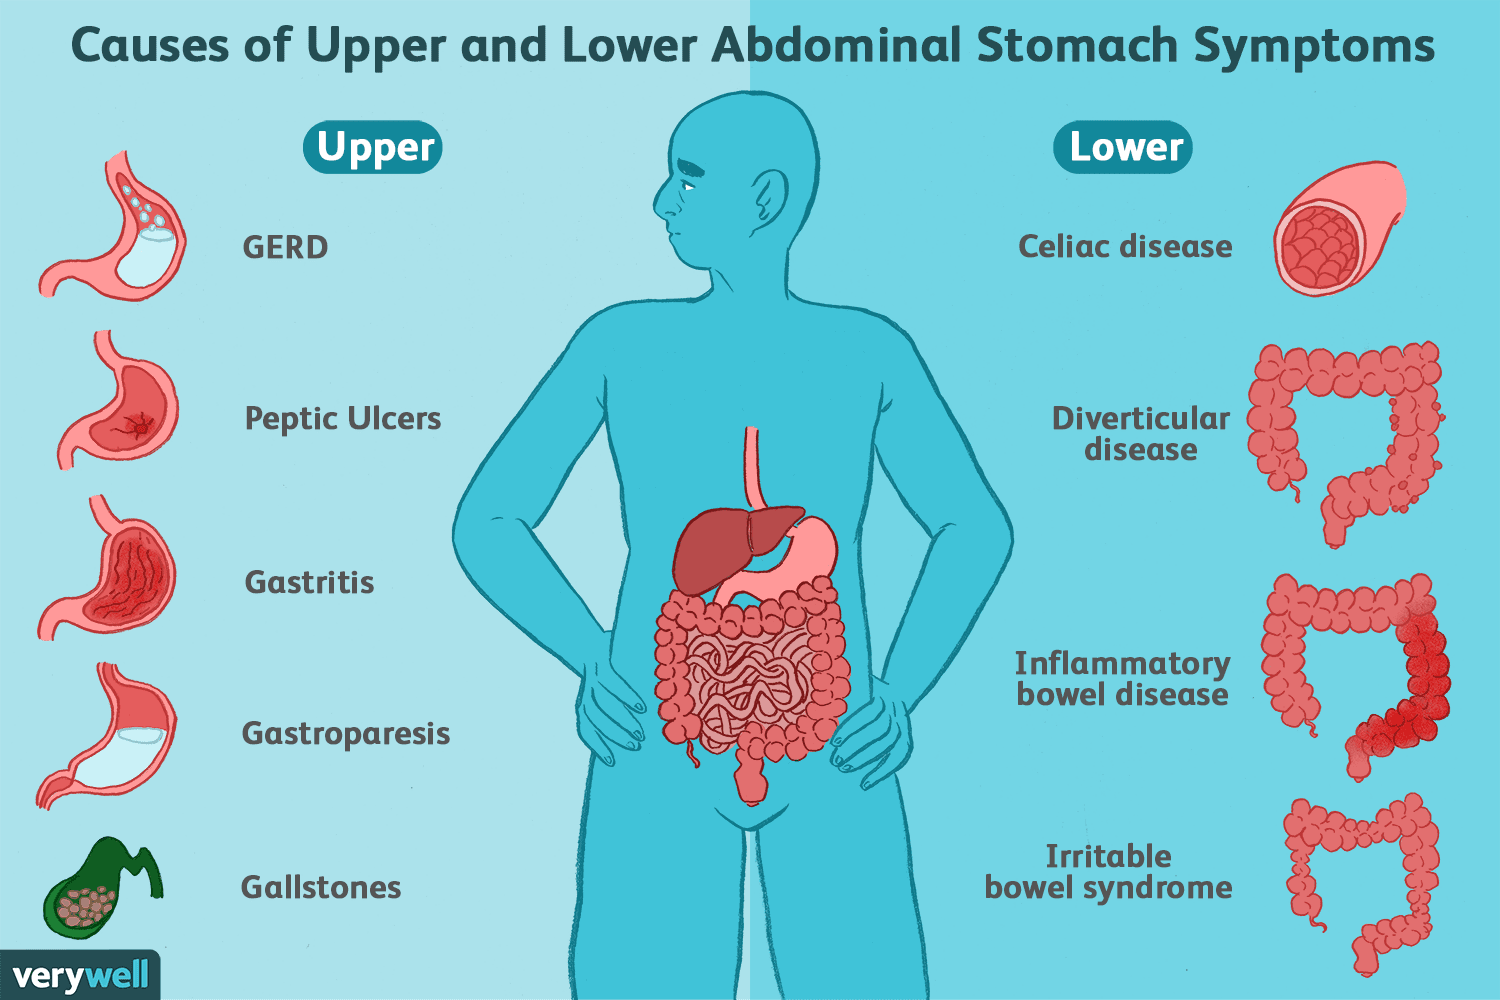 Diet Not Connected To Gi Problems In >> Symptoms Of Common Stomach And Digestive Problems